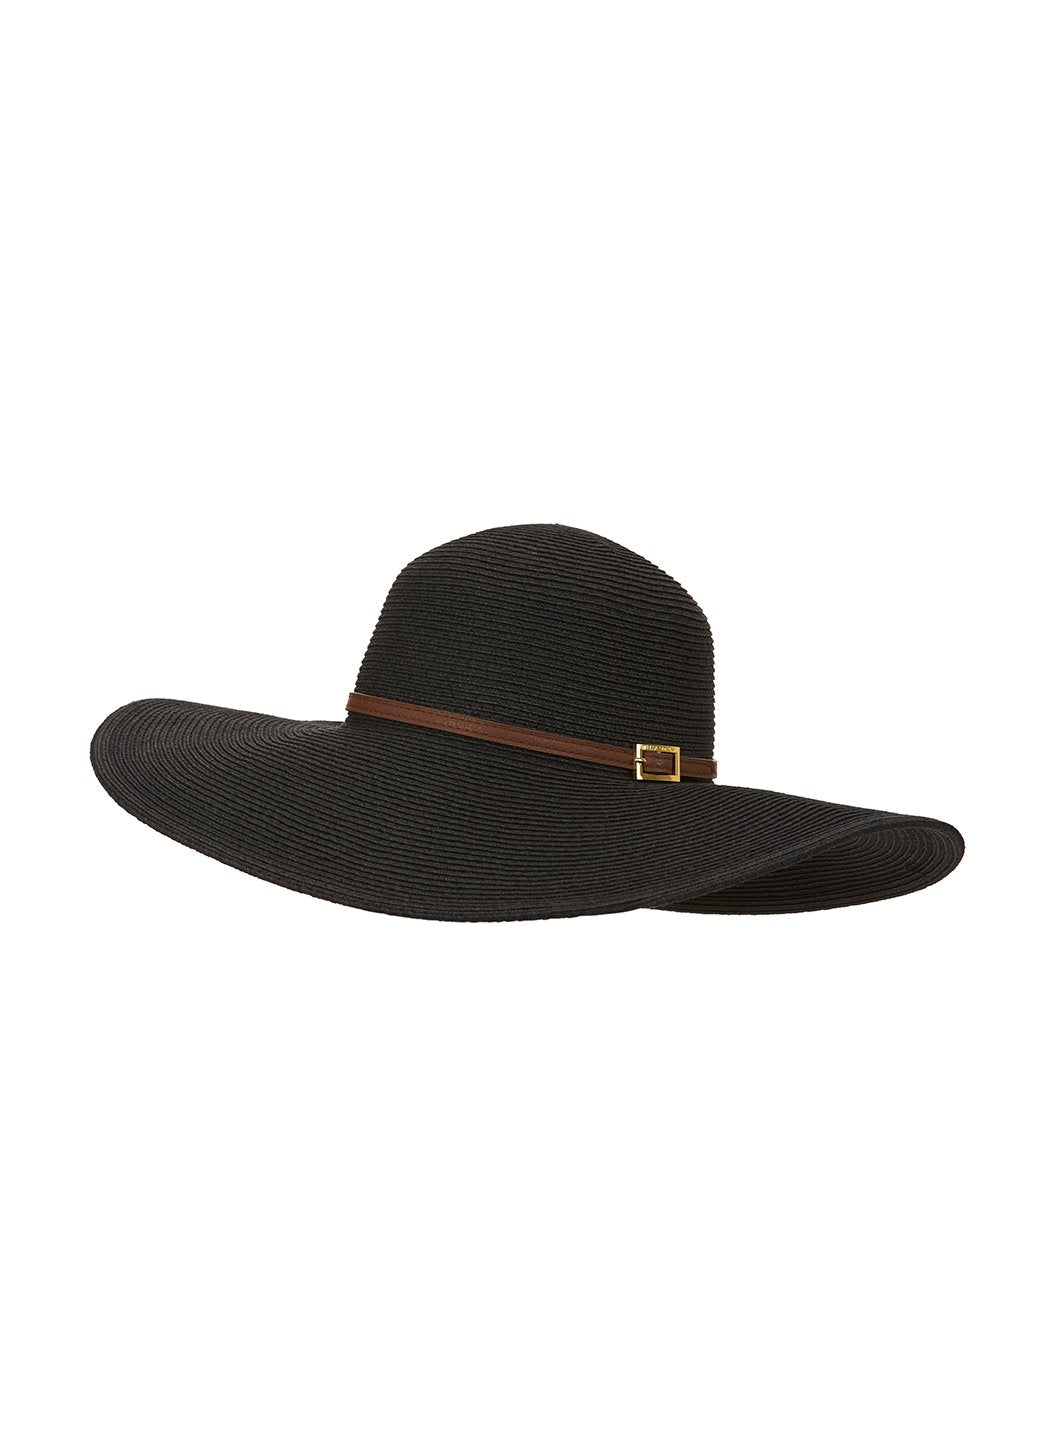 4d07d8e3e1 jemima wide brim beach hat black 2019